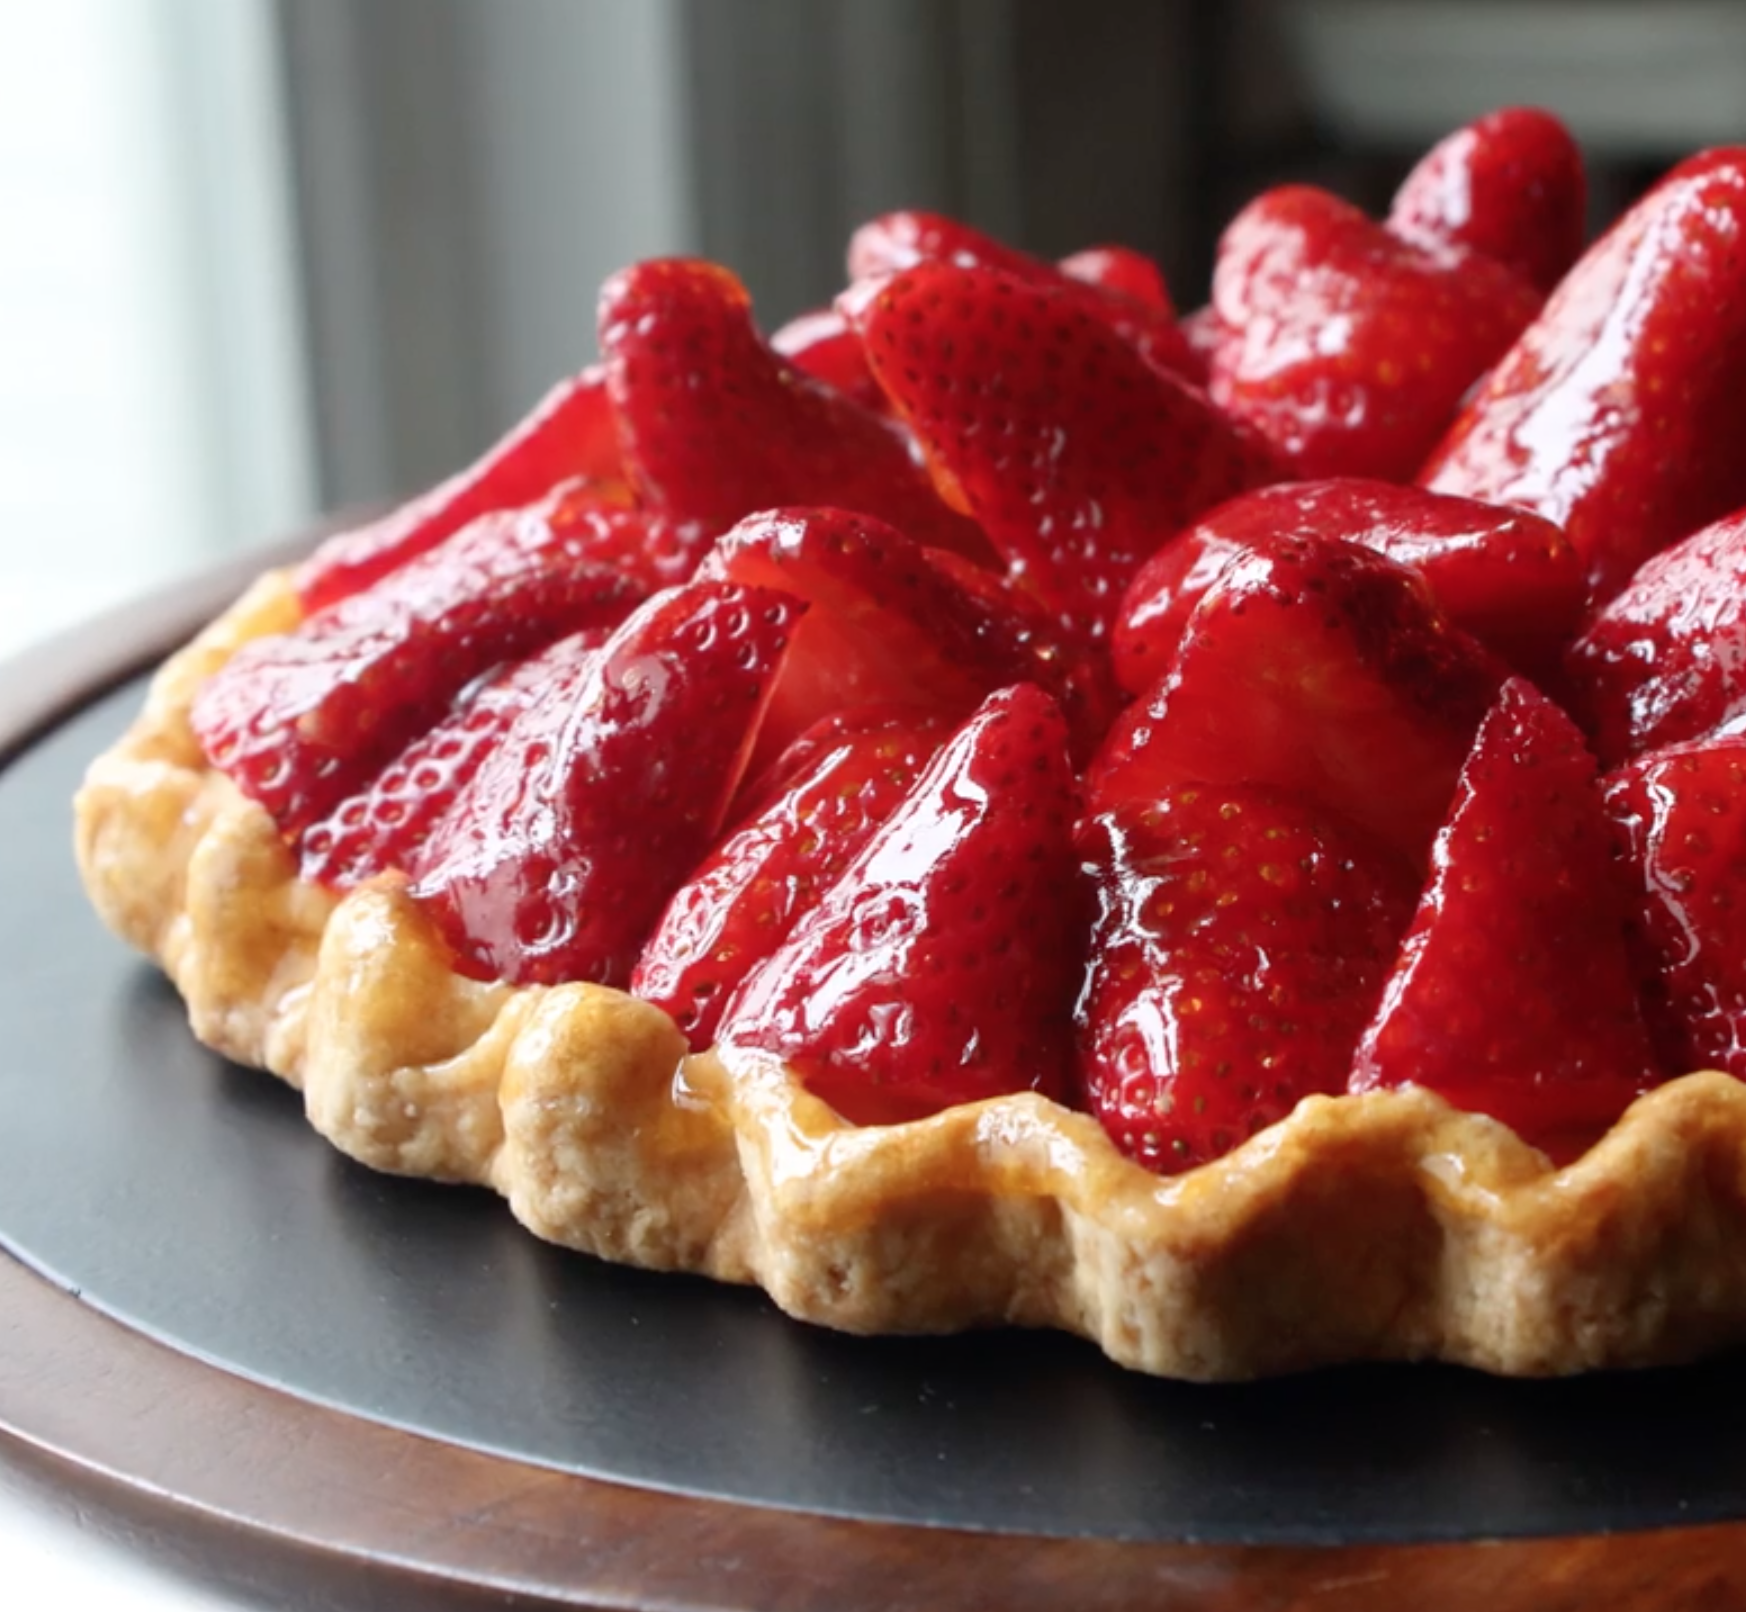 Fresh Strawberry Tart side angle with glazed, glossy strawberries